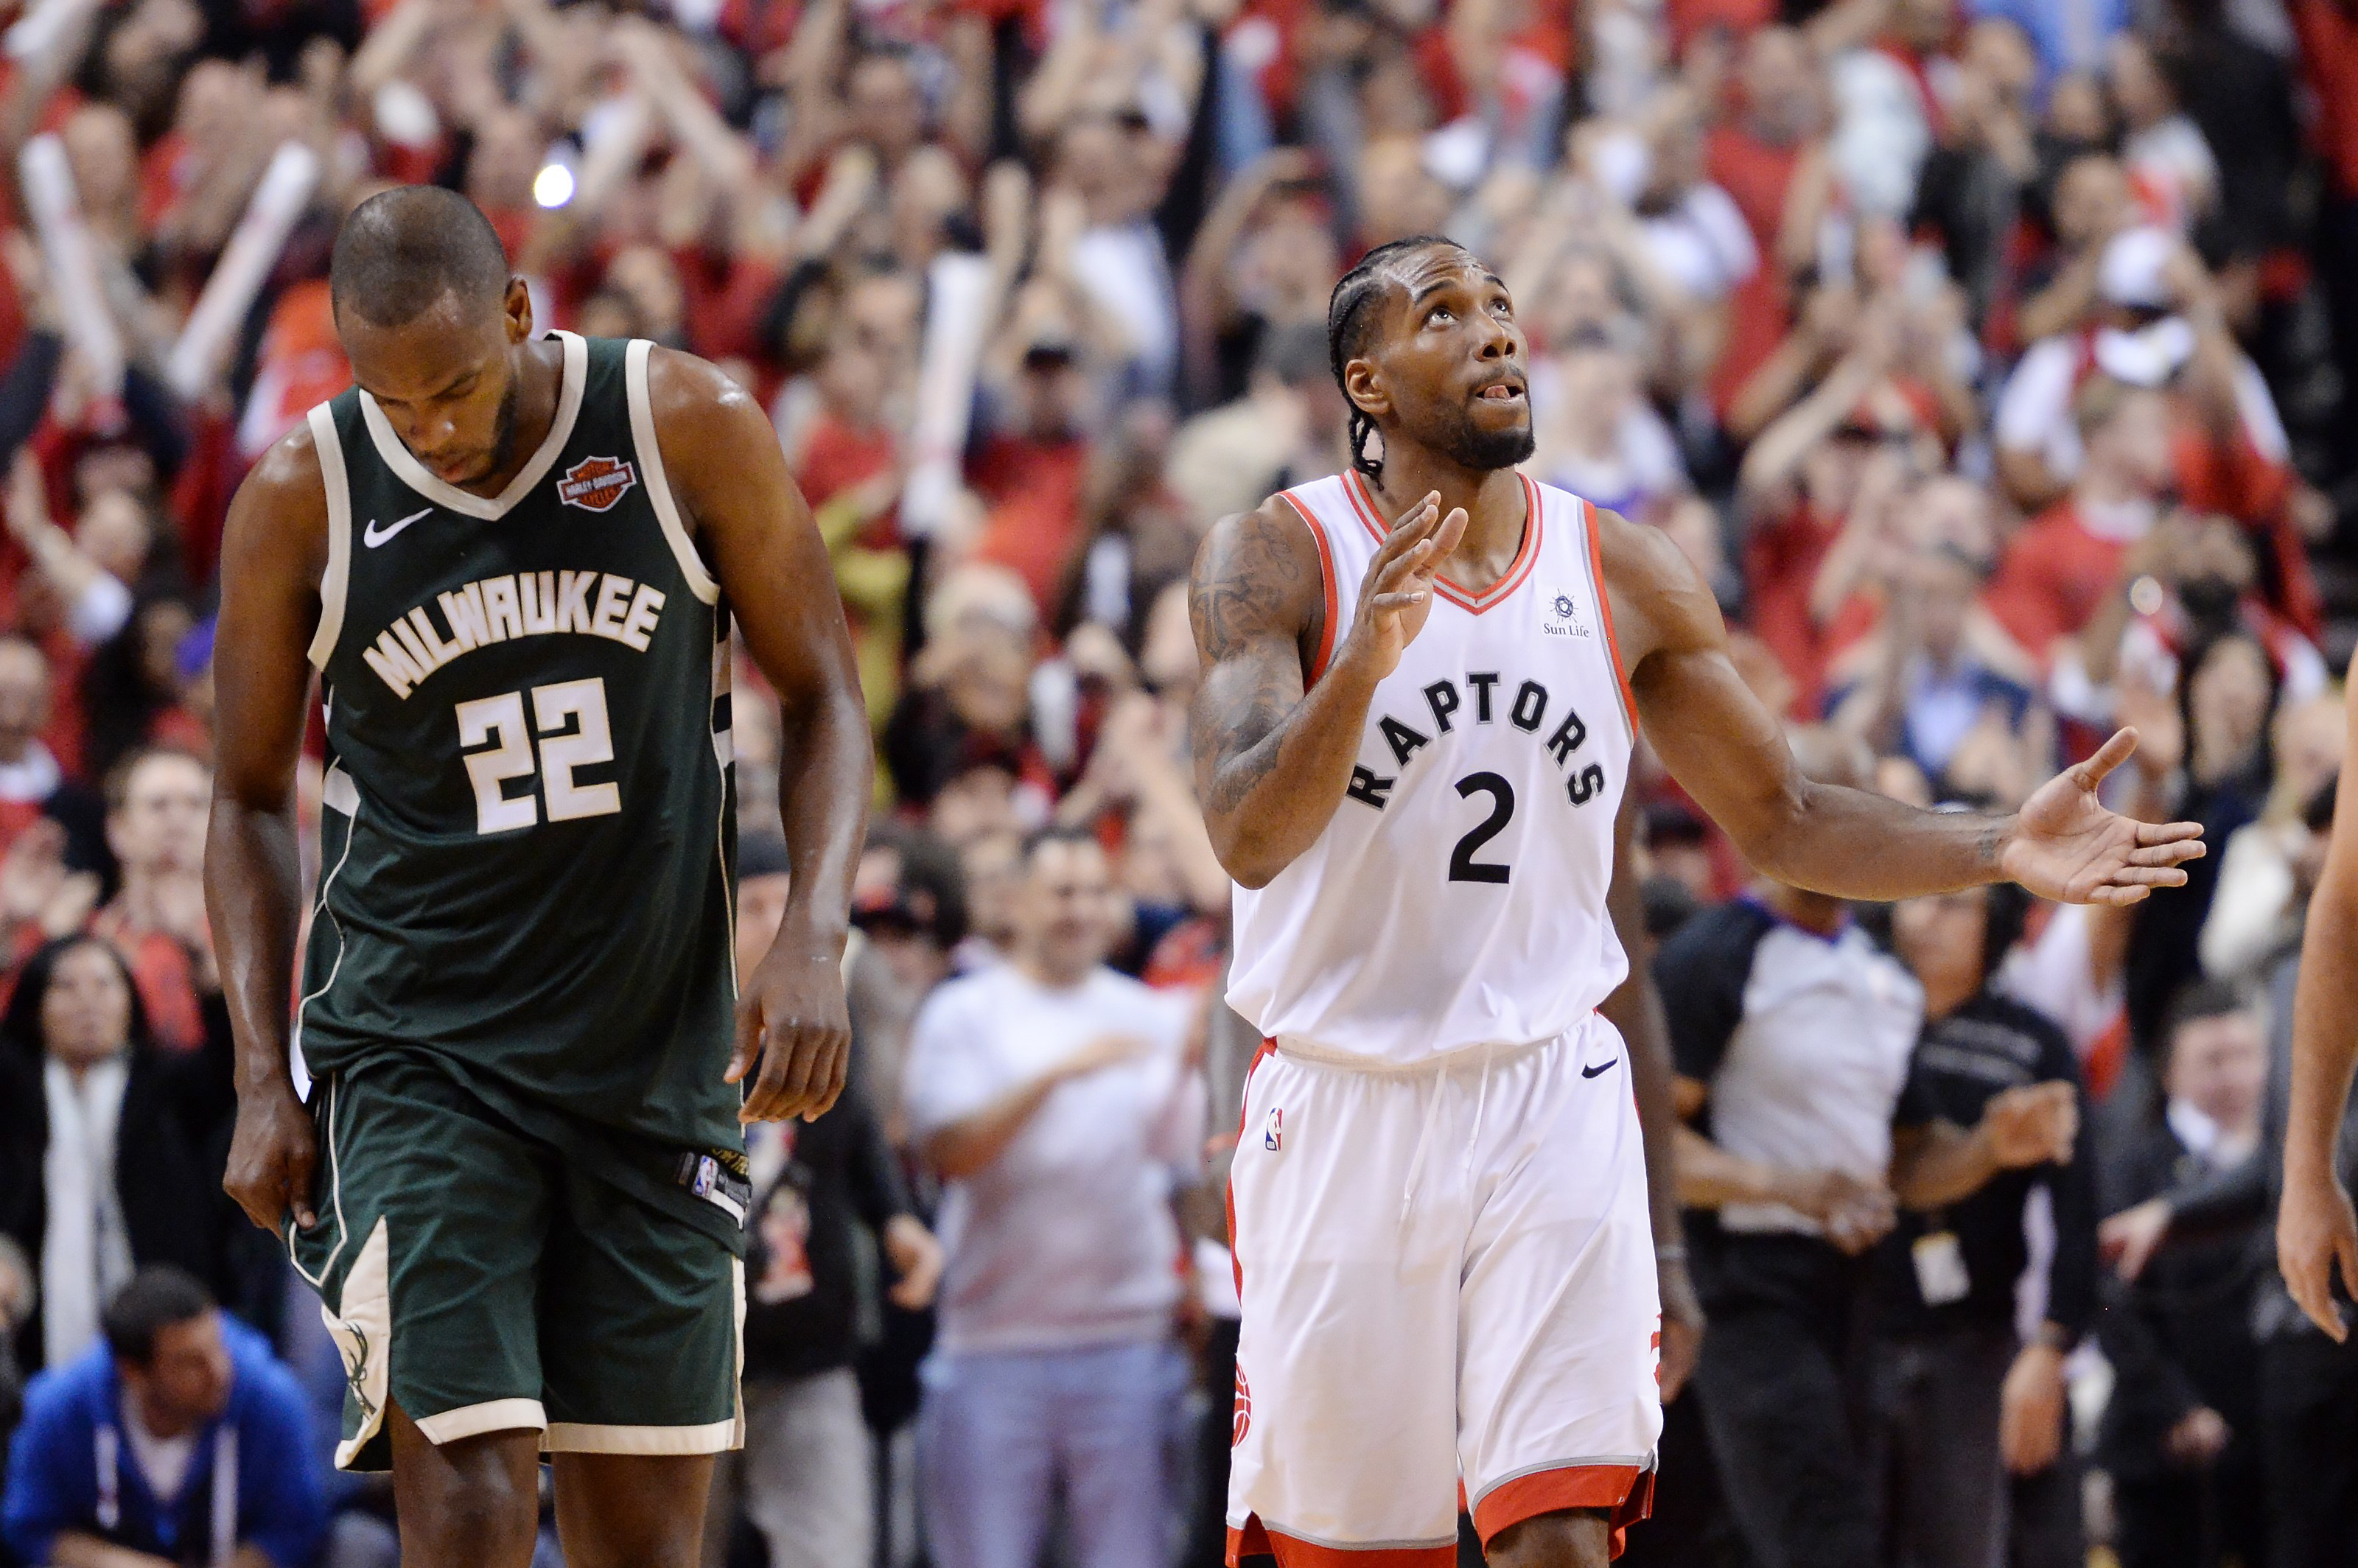 Milwaukee Bucks: 3 takeaways from Game 4 loss vs. Raptors